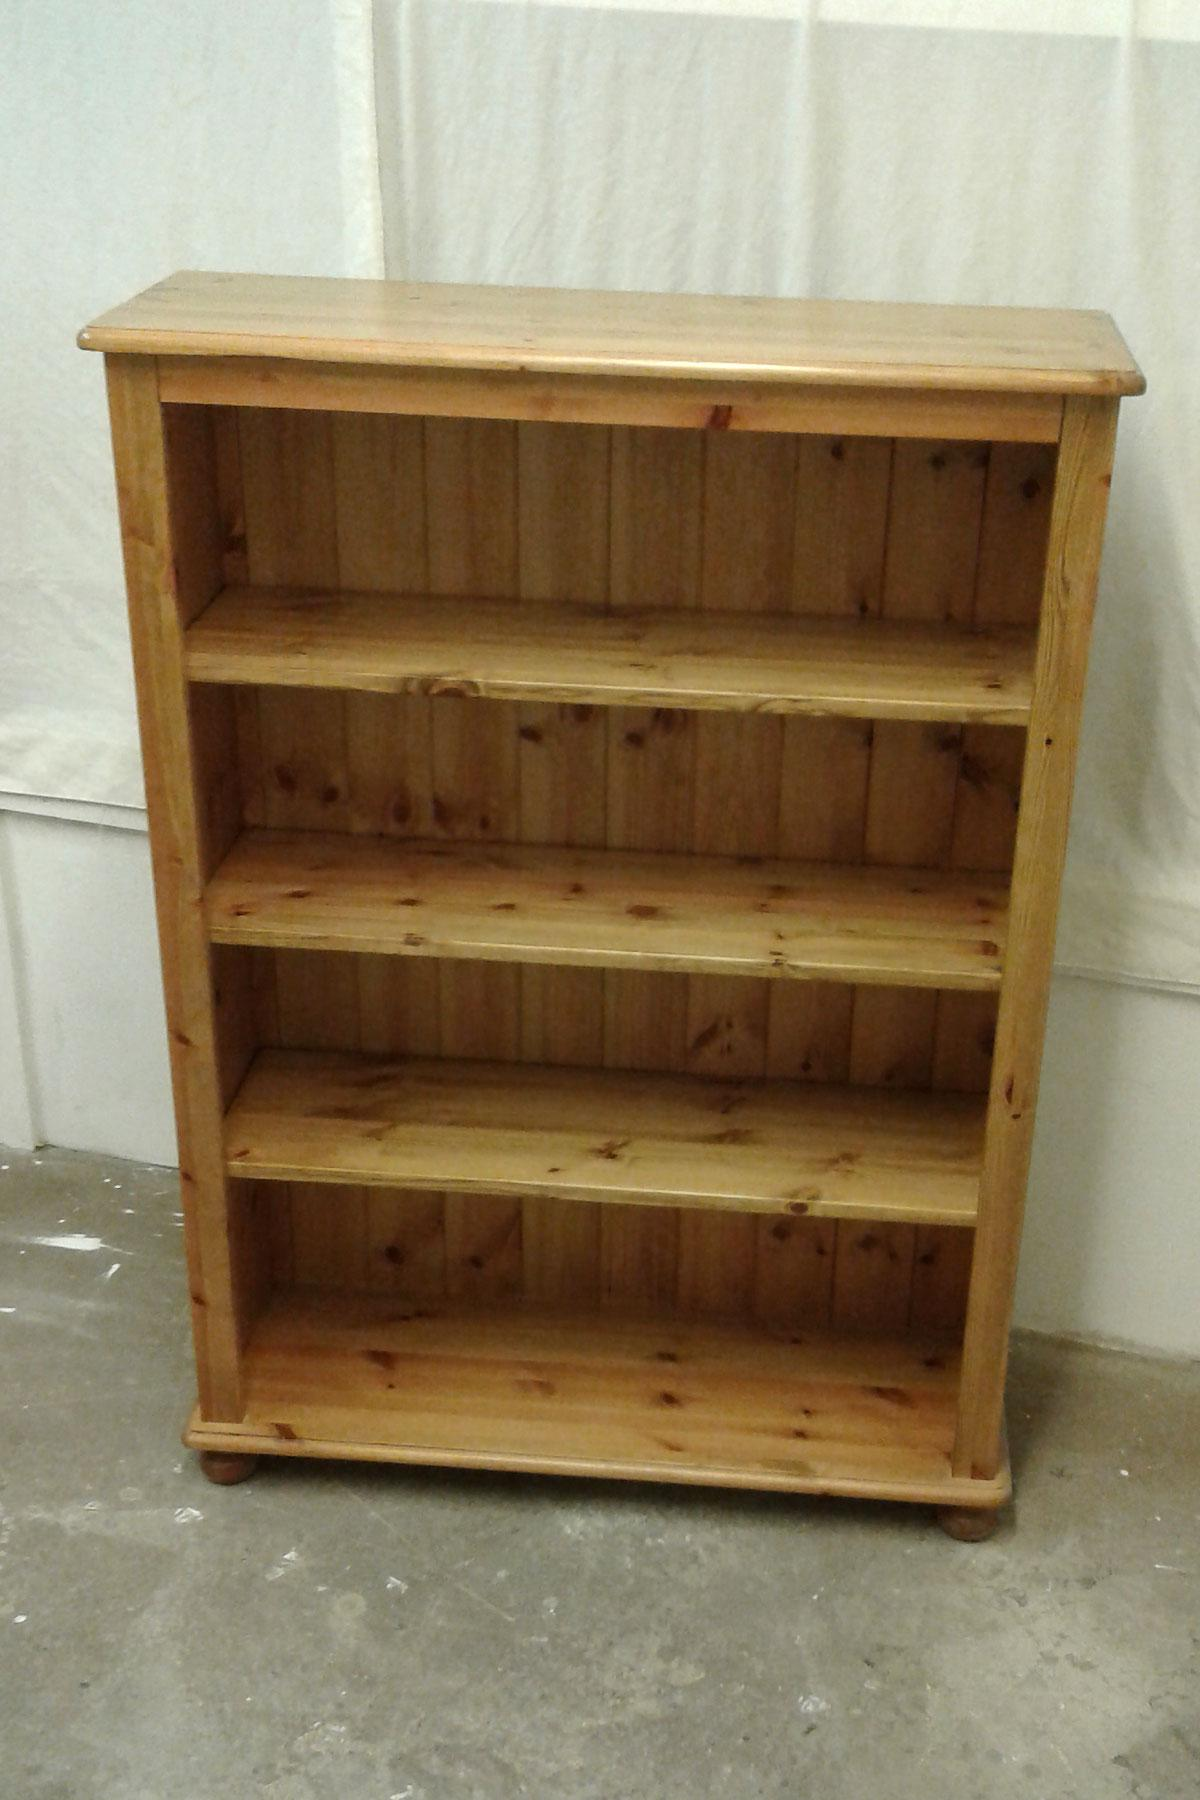 Home Pine are known for our quality pine bookcases and pine bookshelves. All of which can also be produced in Oak.